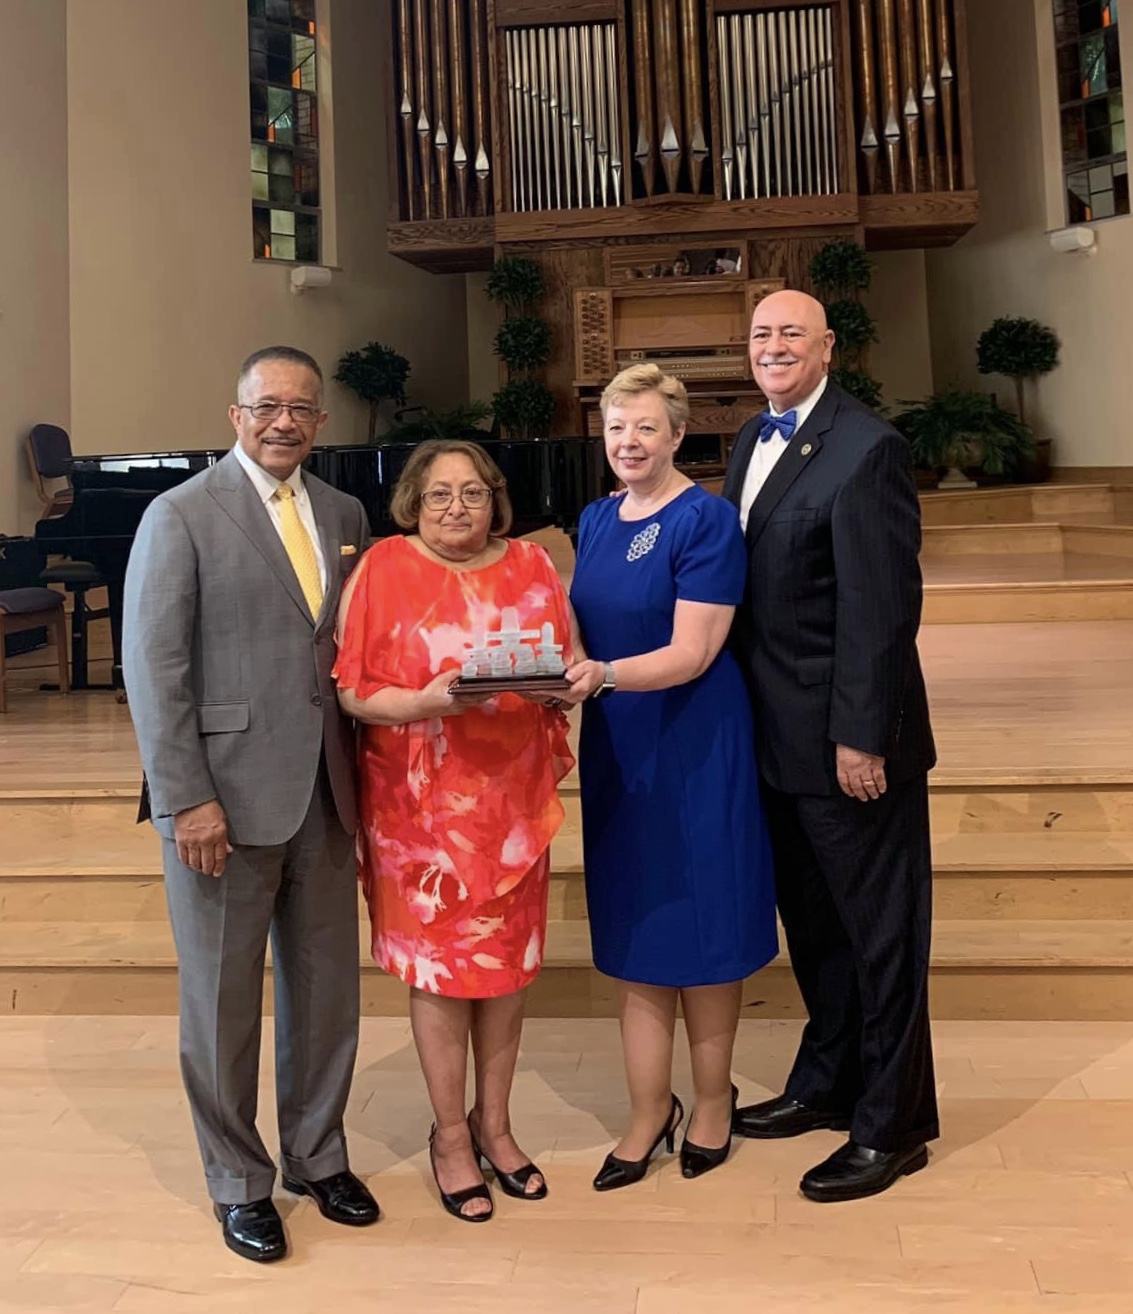 Buford Griffith, Carmen Griffith, Pamela Consuegra, and Claudio Consuegra, pose during an award presentation of the NAD Family Ministries' annual Family Research and Practice Conference